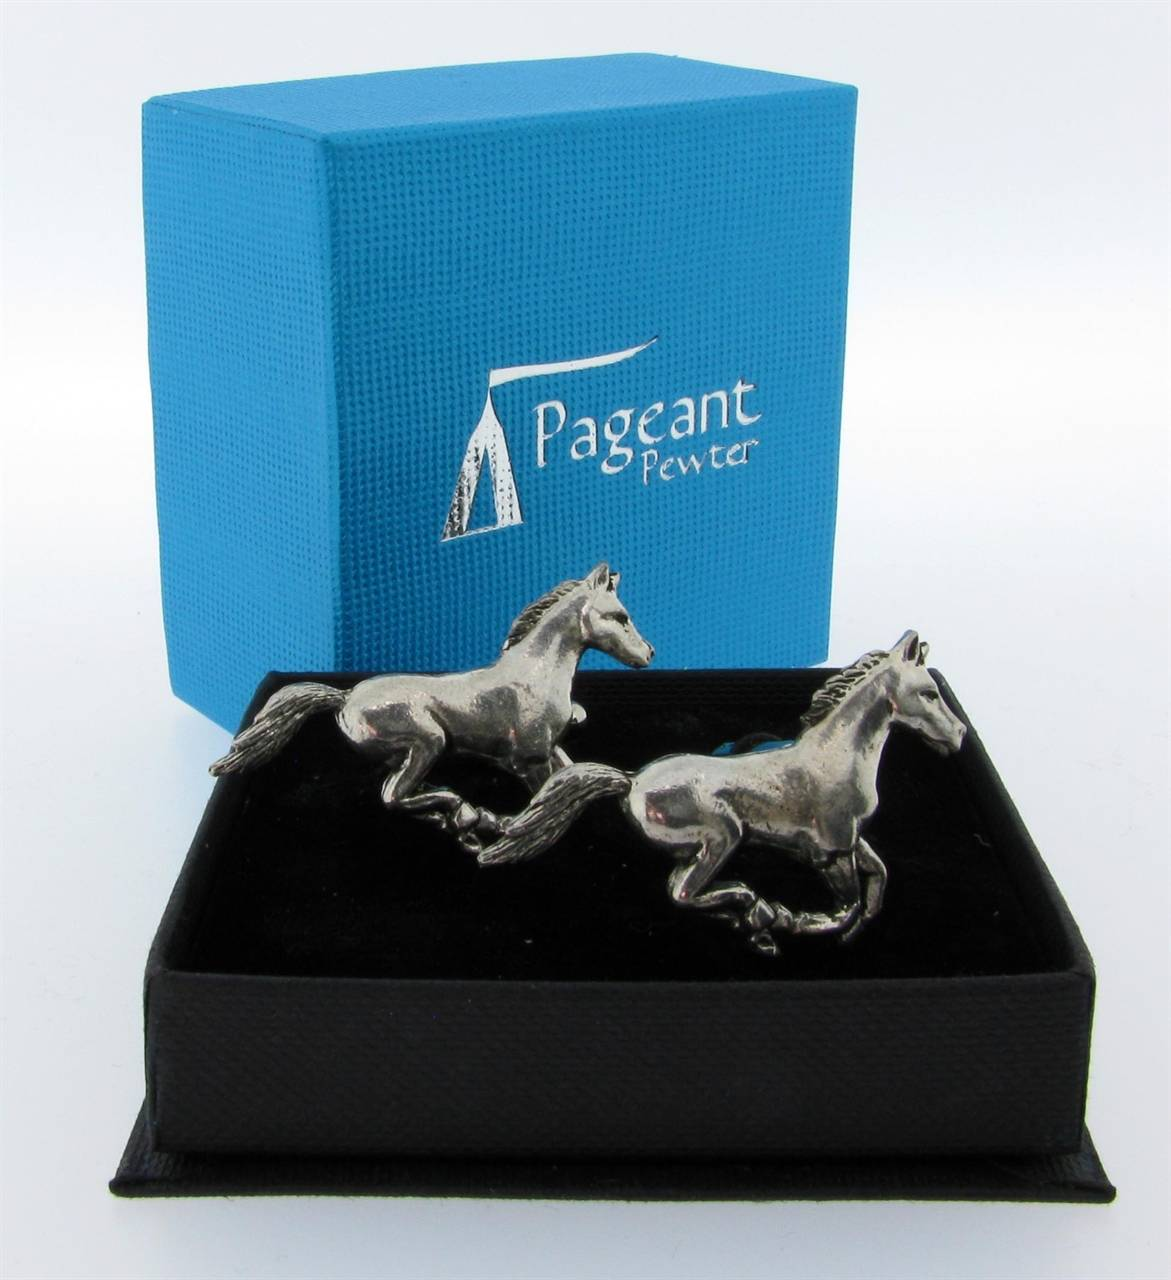 Horse Cufflinks - high quality pewter gifts from Pageant Pewter